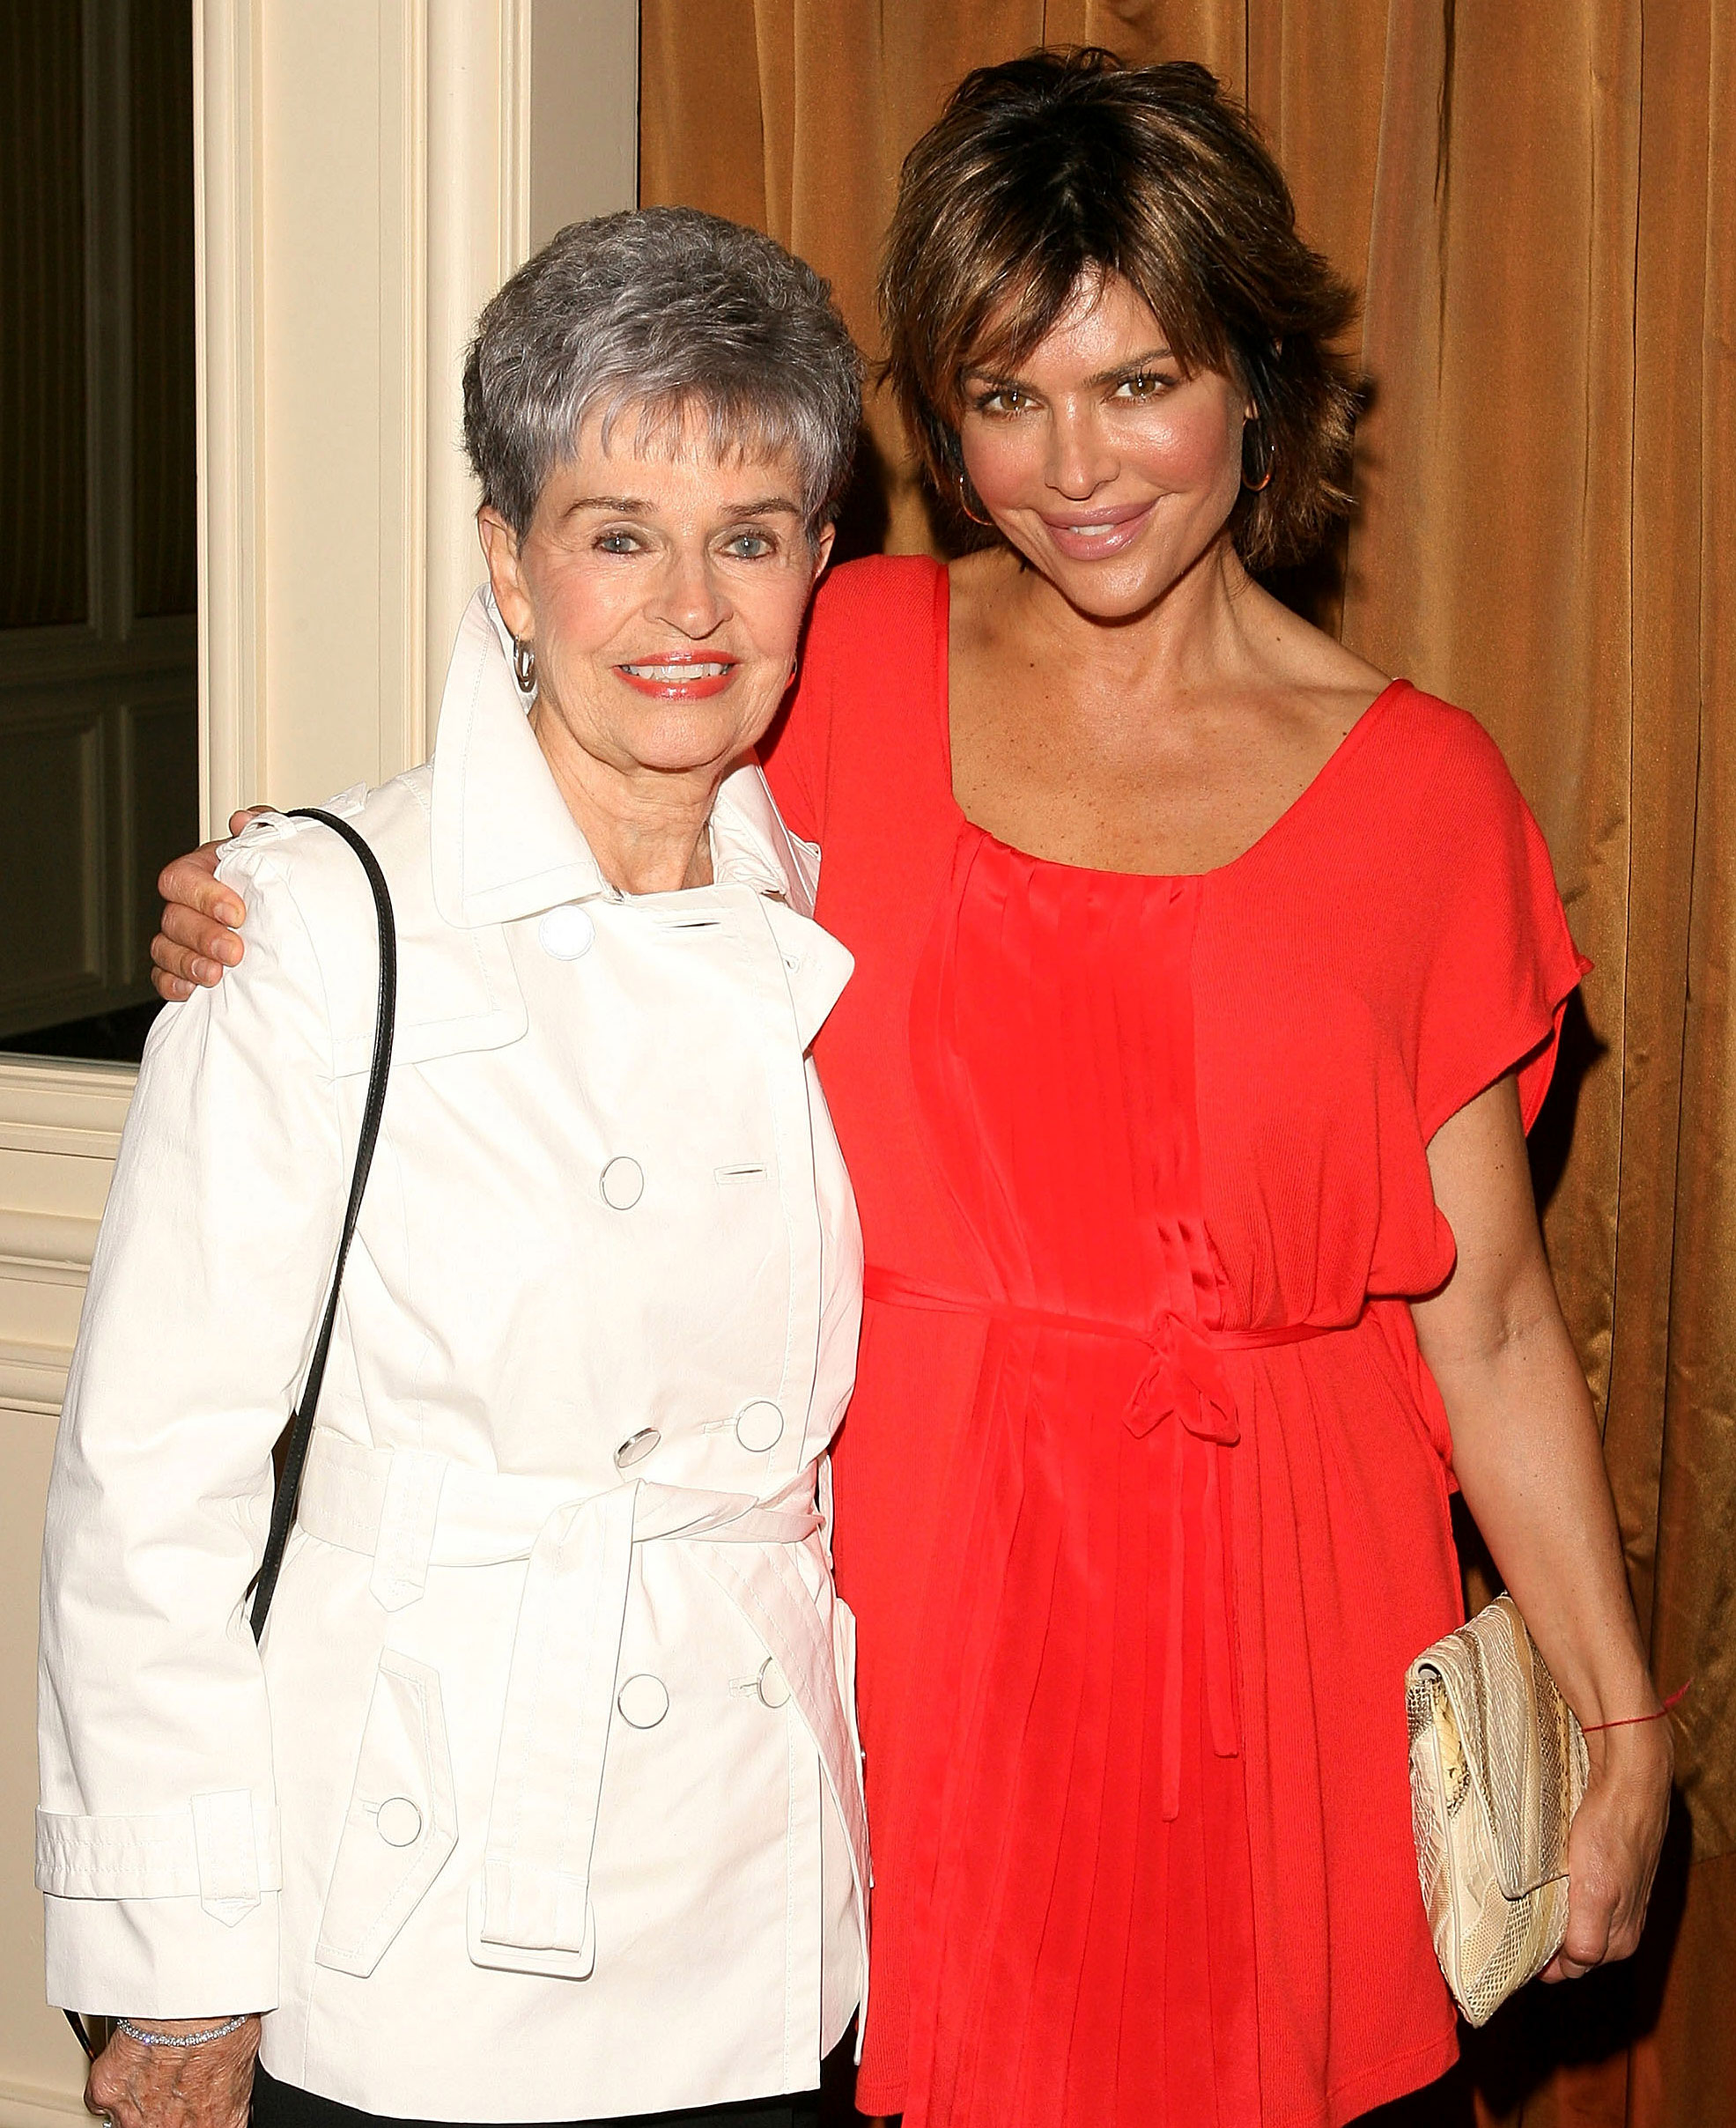 Lisa Rinn Mother Lois Attacked Serial Killer David Carpenter - BEVERLY HILLS, CA – APRIL 09: Actress Lisa Rinna (R) and her mother Lois Rinna arrive at Saks Fifth Avenue's 20th Annual Spring Luncheon at the Beverly Wilshire Hotel on April 9, 2008 in Beverly Hills, California. (Photo by Jesse Grant/WireImage)